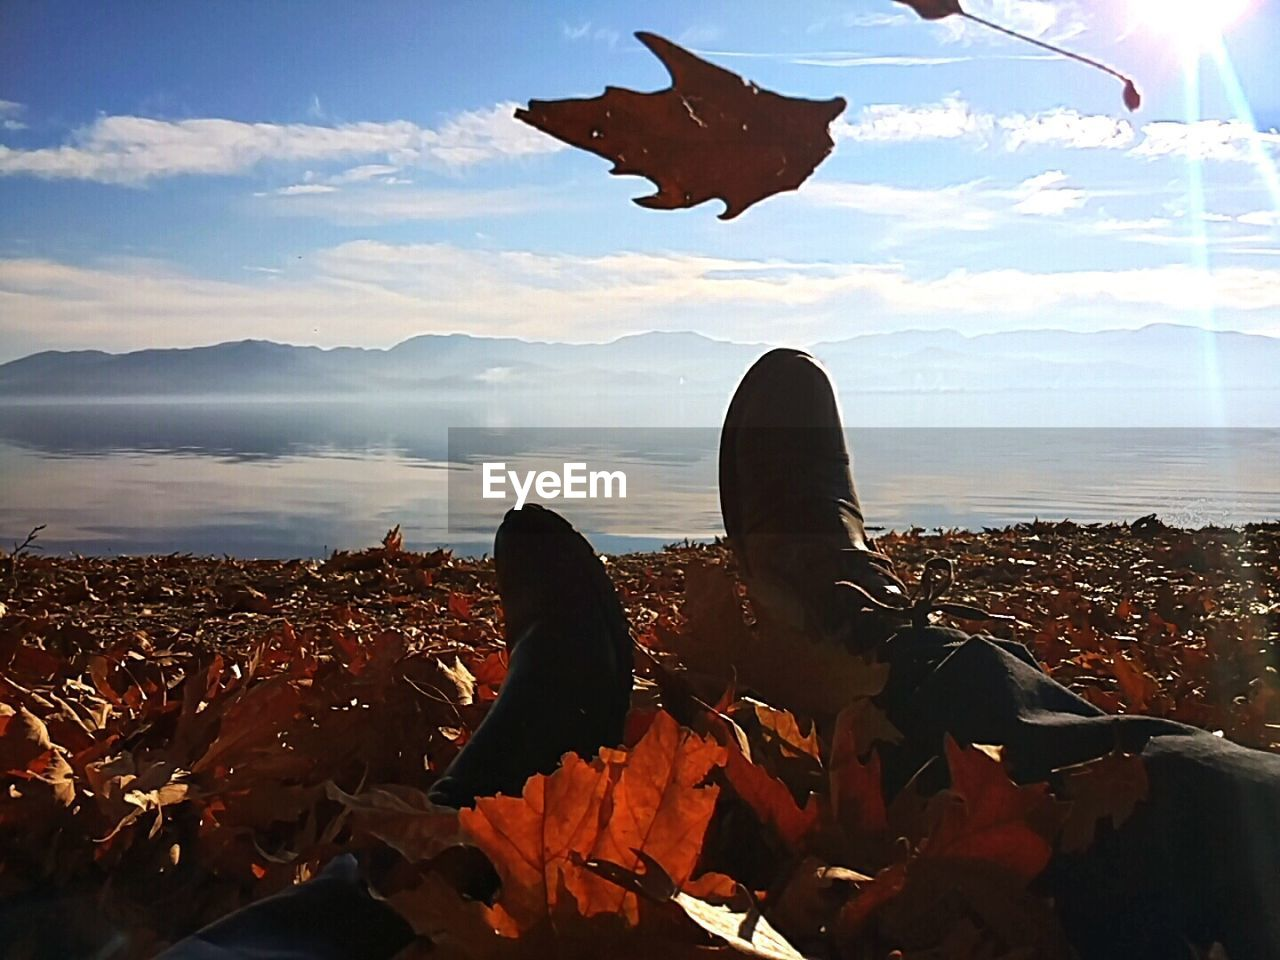 autumn, leaf, nature, change, sky, day, mid-air, scenics, beauty in nature, landscape, outdoors, men, cloud - sky, tranquility, leisure activity, one person, human leg, lifestyles, flying, mountain, real people, low section, close-up, people